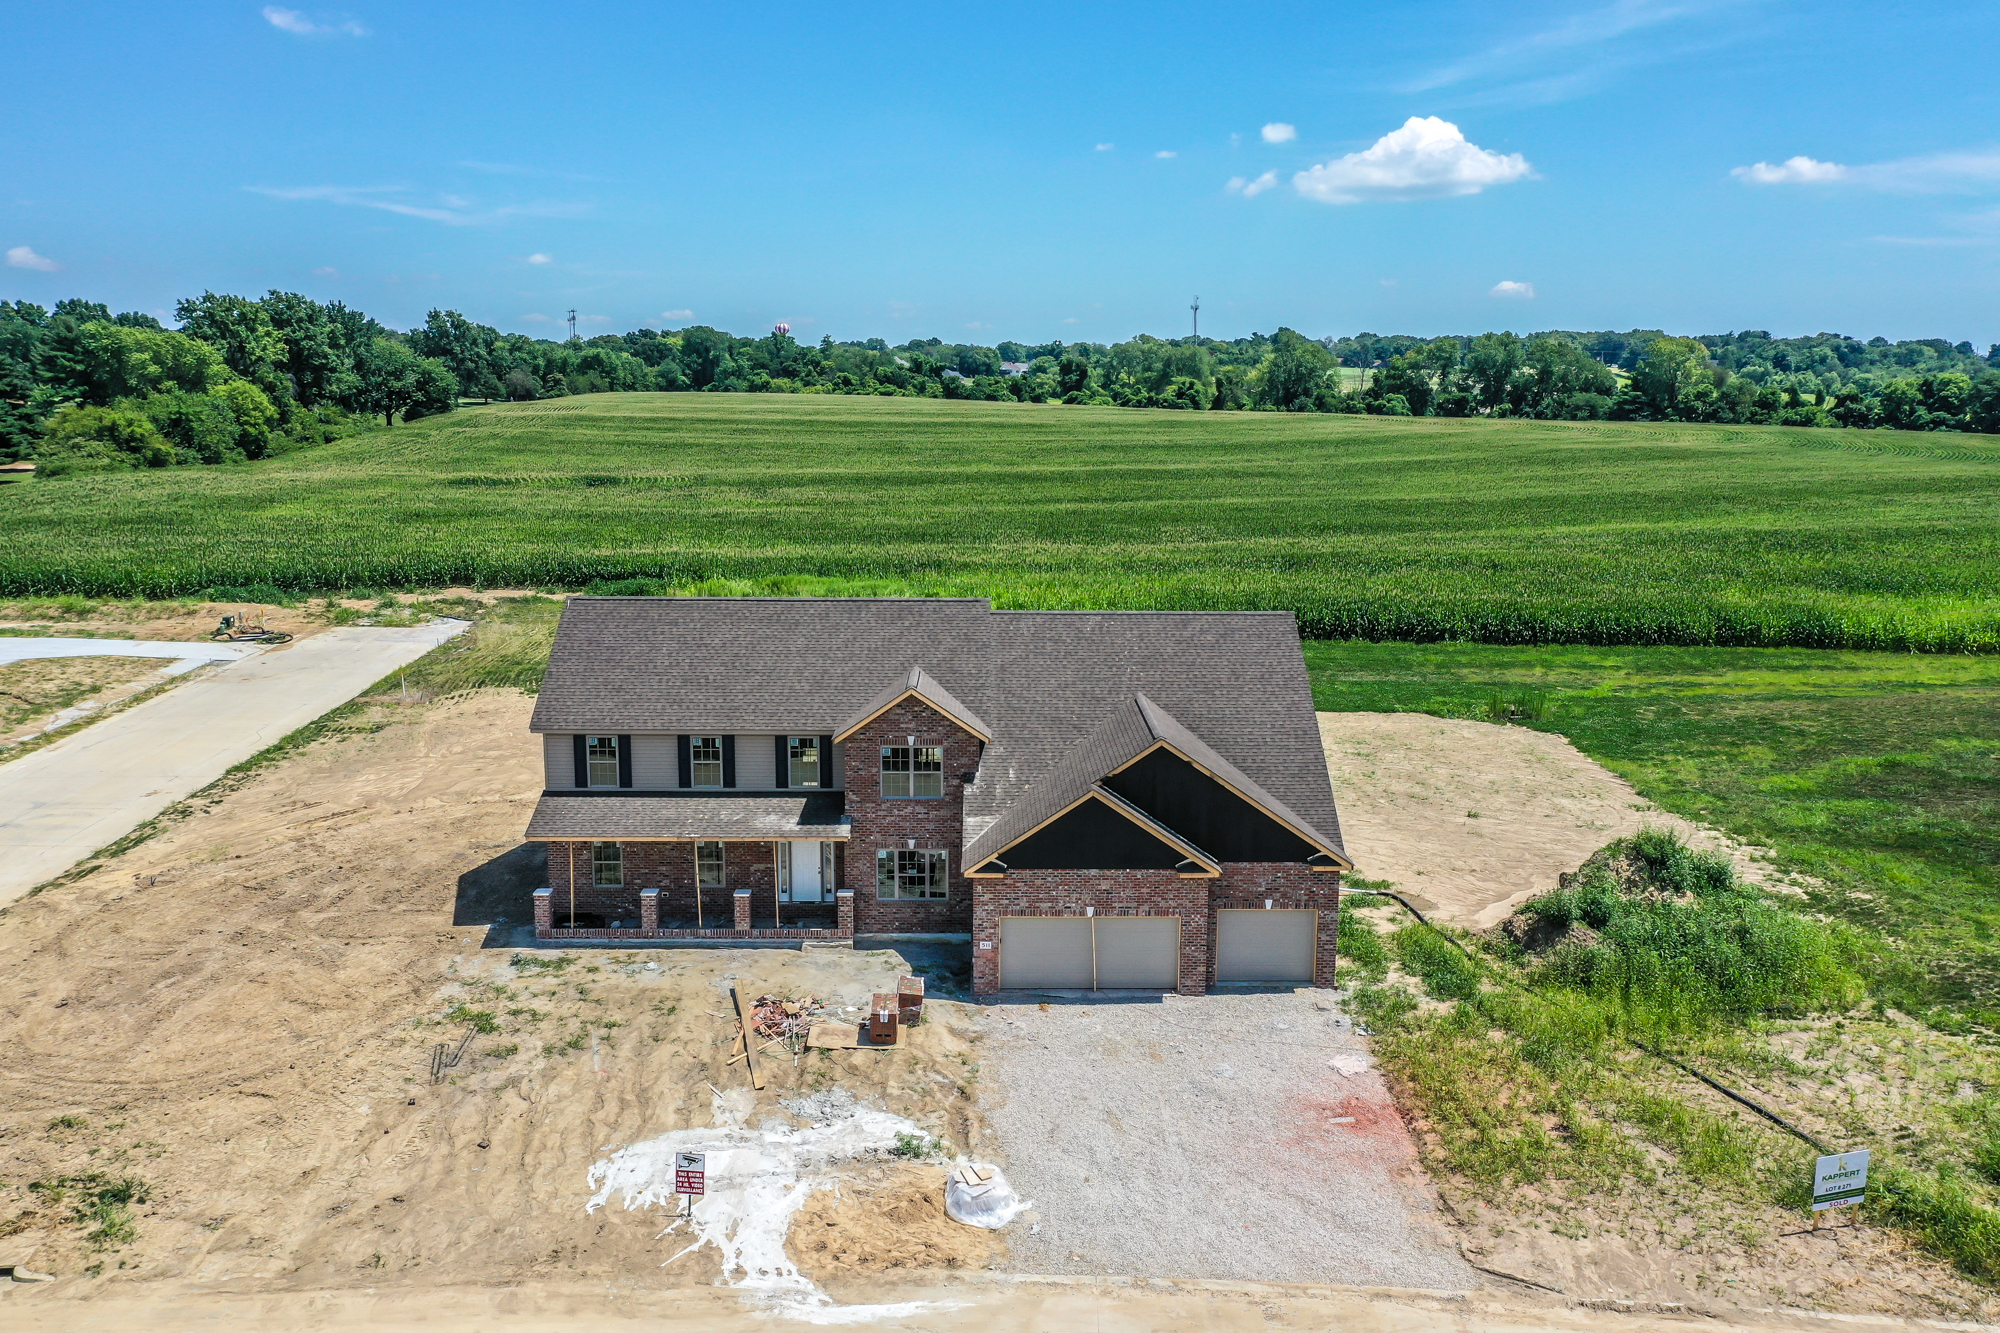 New_Construction_Homes_For_Sale_Shiloh_Illinois_Near_Scott_AFB-22.jpg